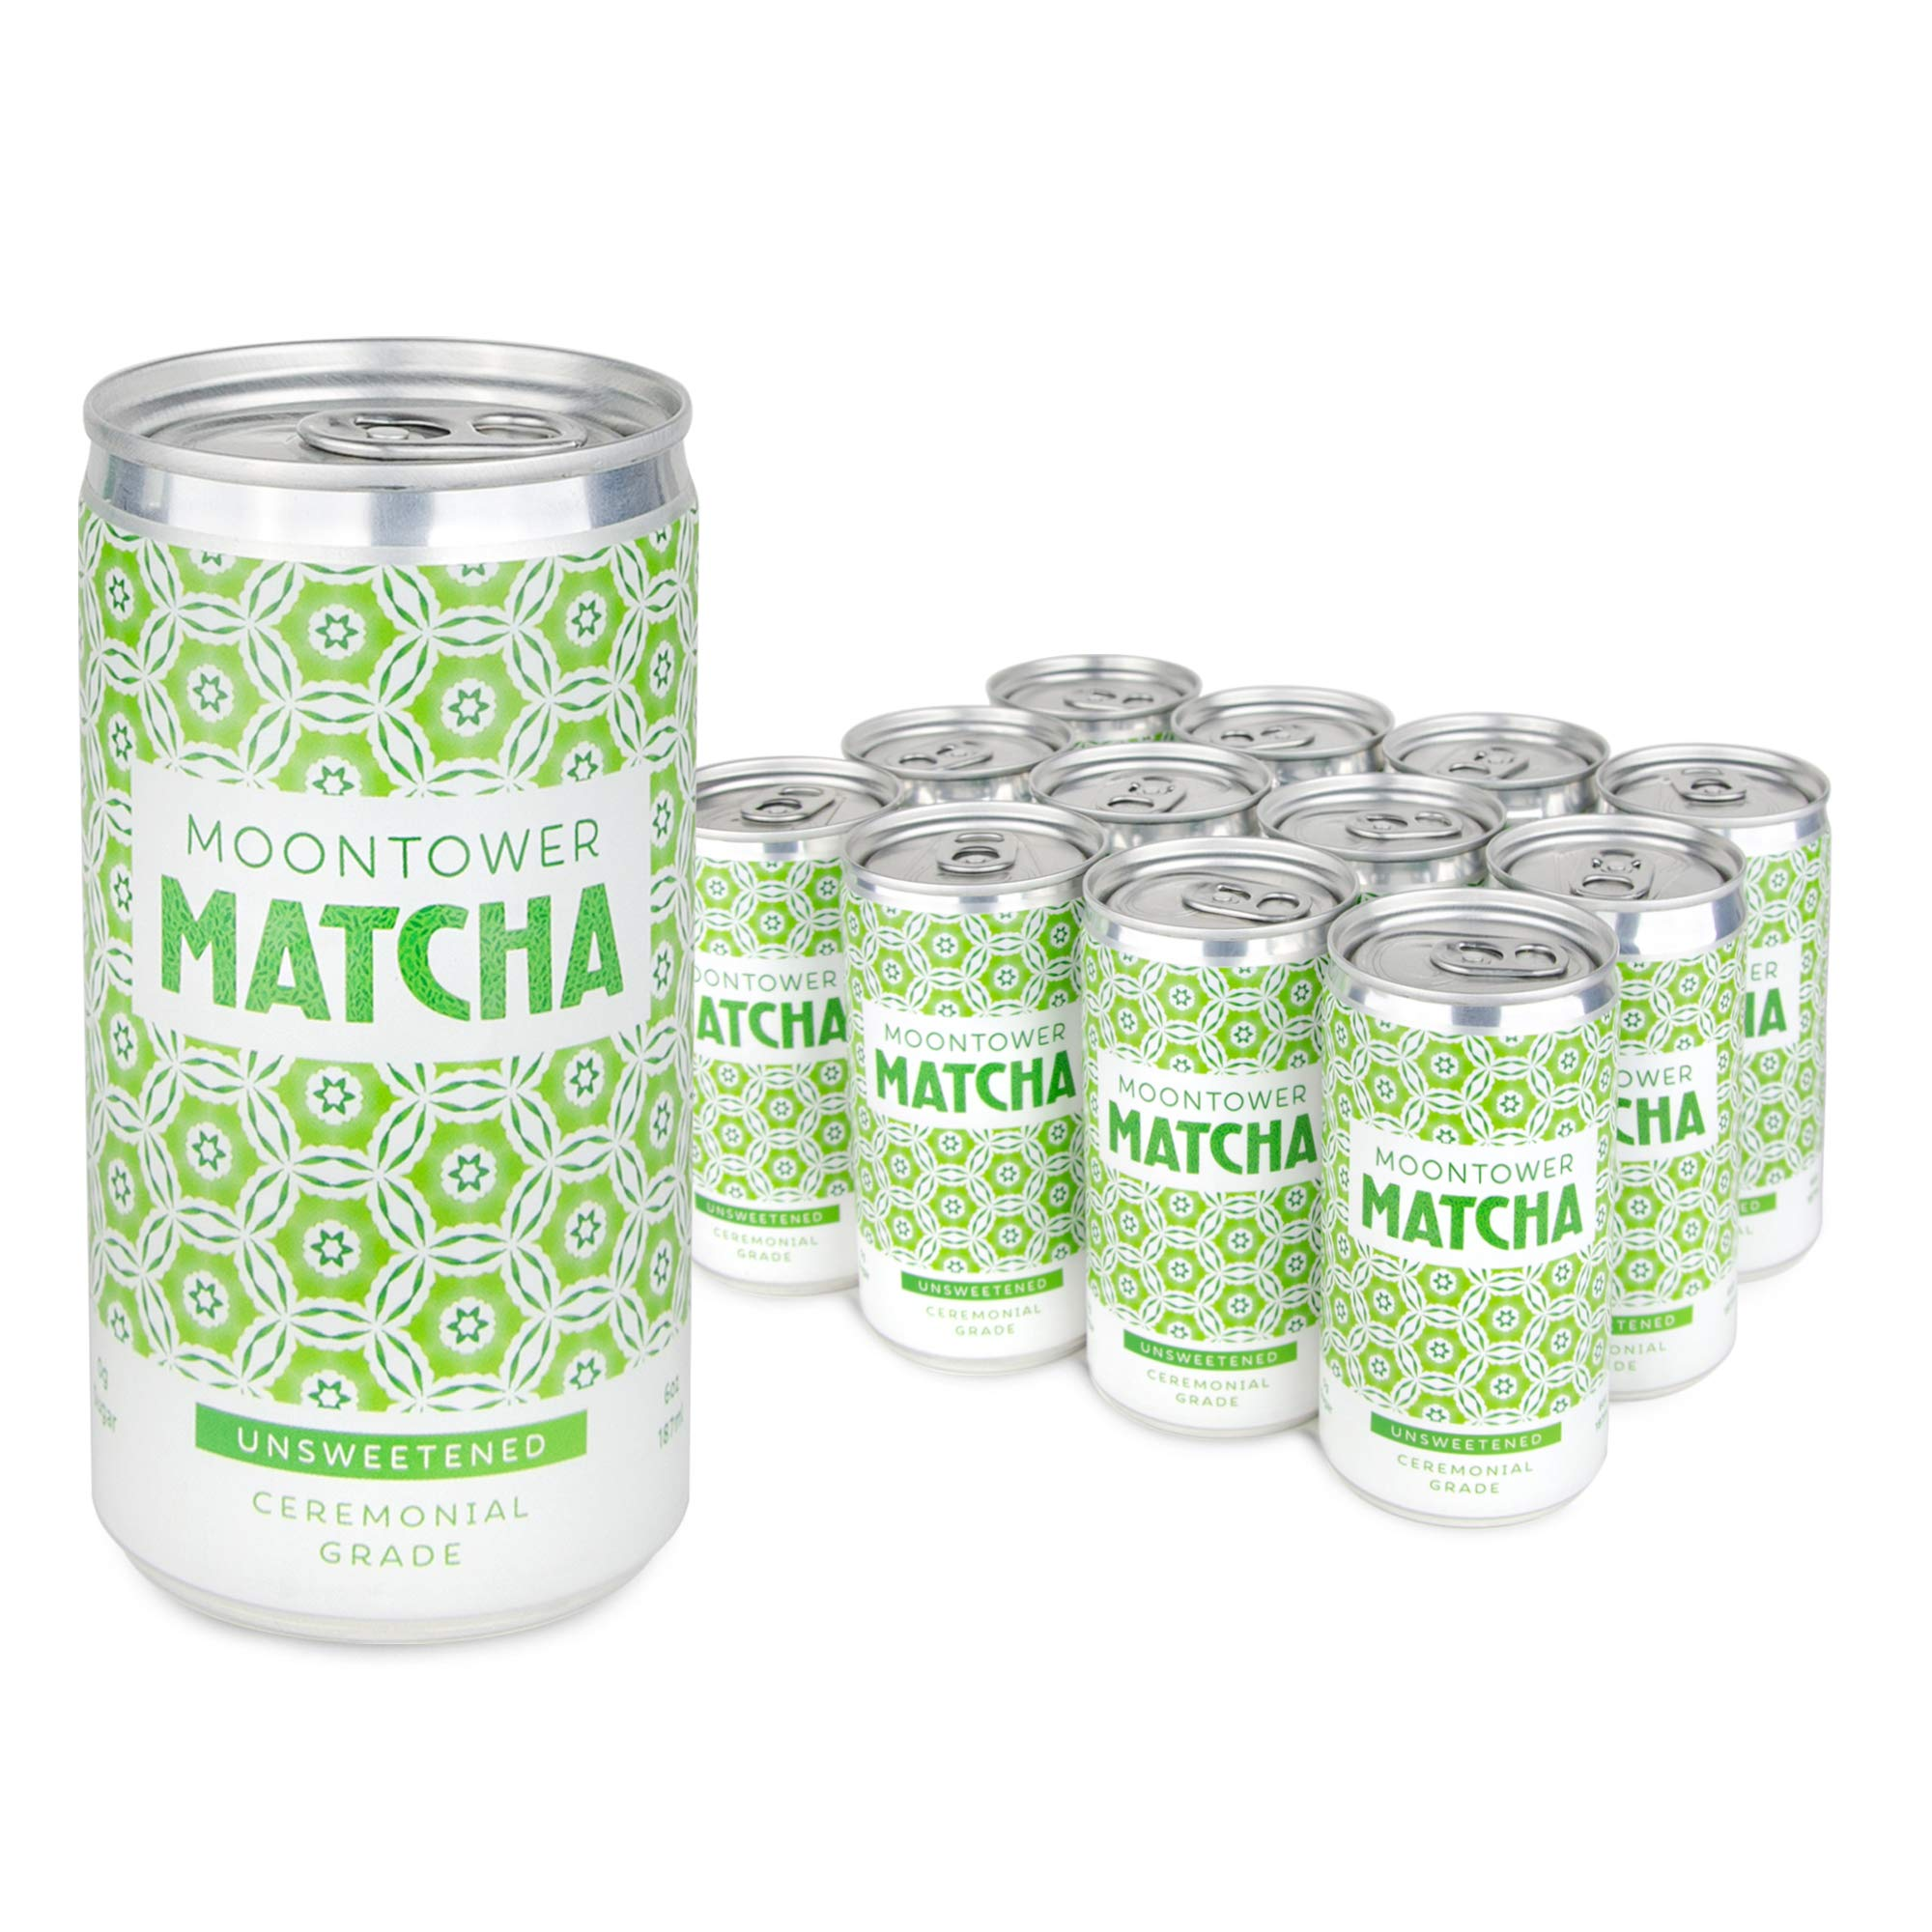 Moontower Matcha Green Tea, Unsweetened, Ceremonial Grade Japanese Matcha Tea, Canned & Ready to Drink, 12 Pack of 6 Ounce Matcha Cans, Gluten Free, Sugar Free and Non-GMO